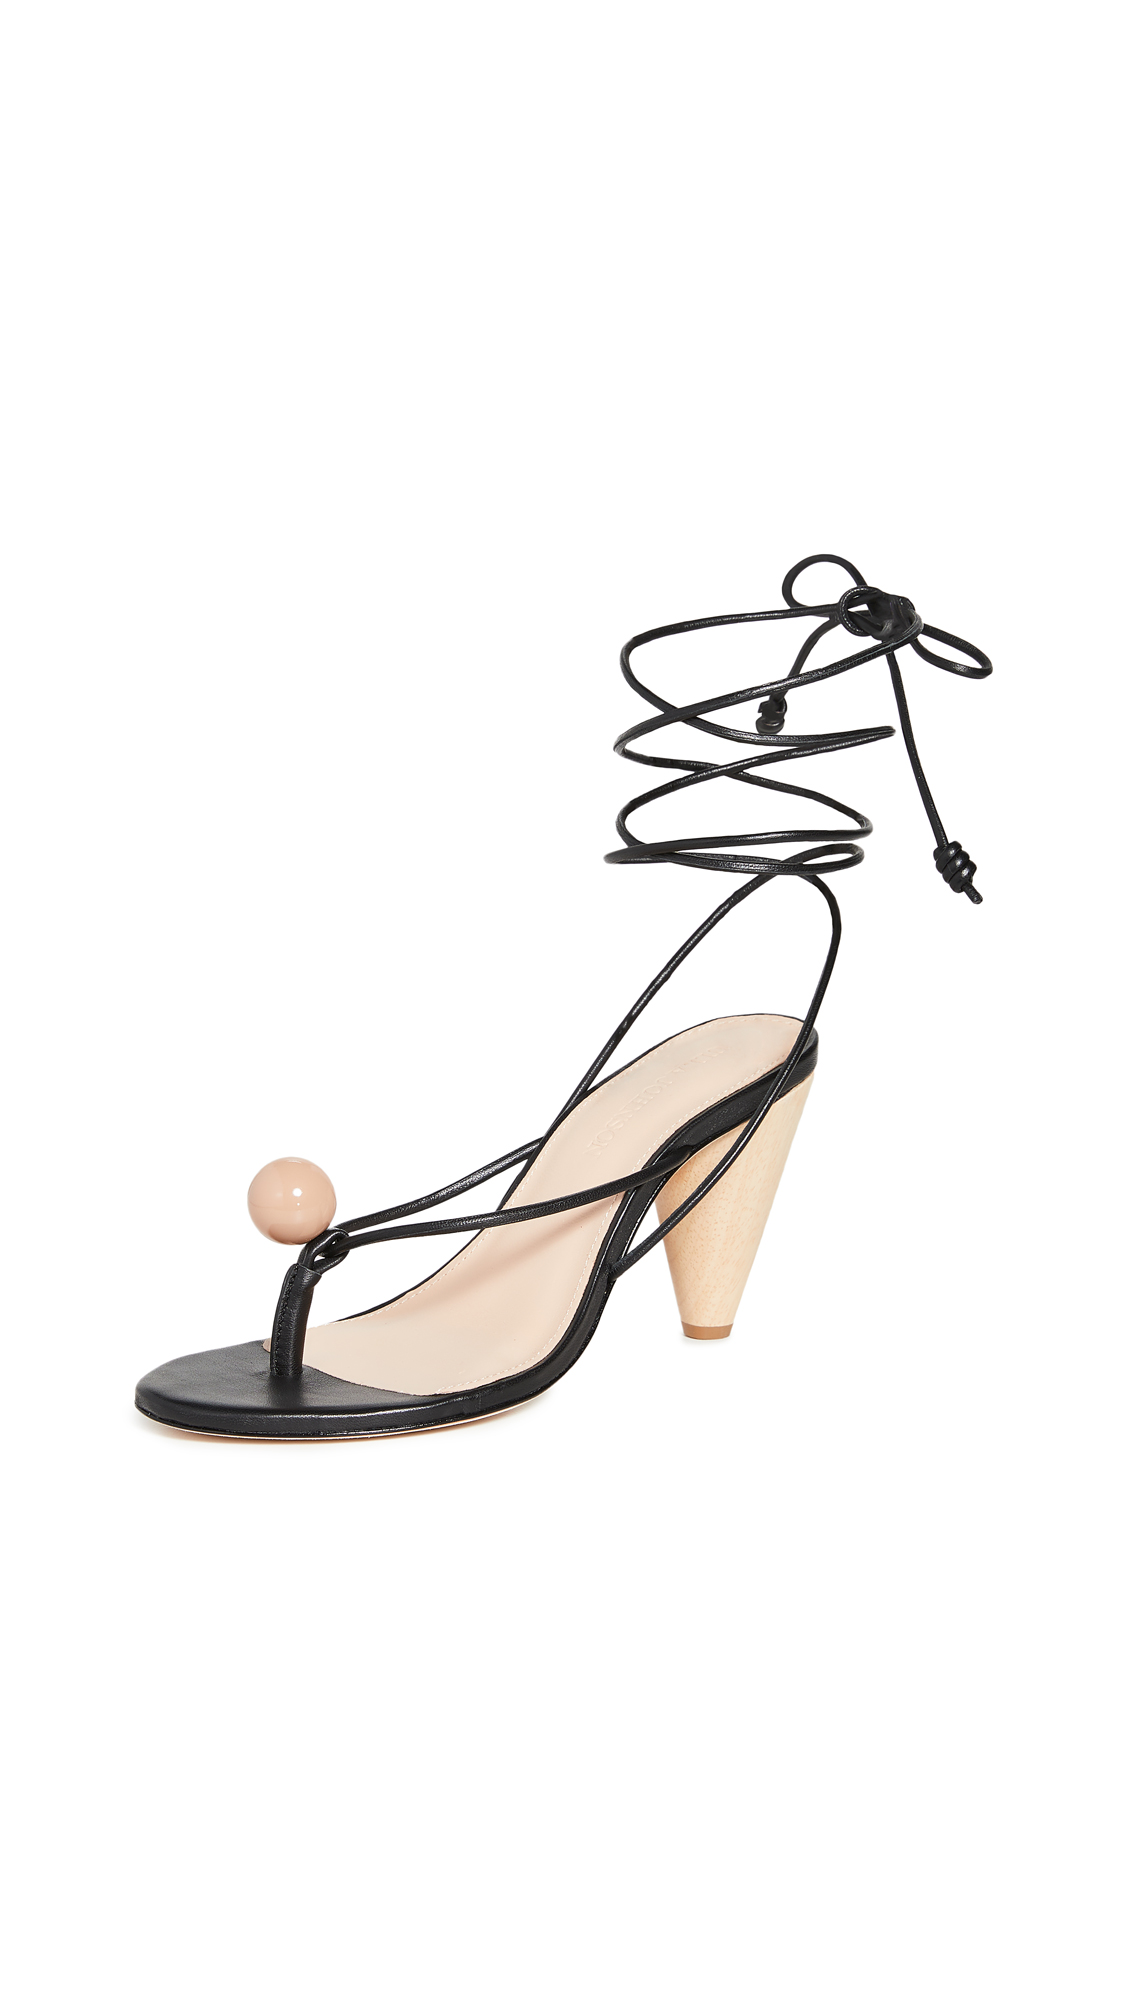 Ulla Johnson Darby Heel Sandals – 50% Off Sale